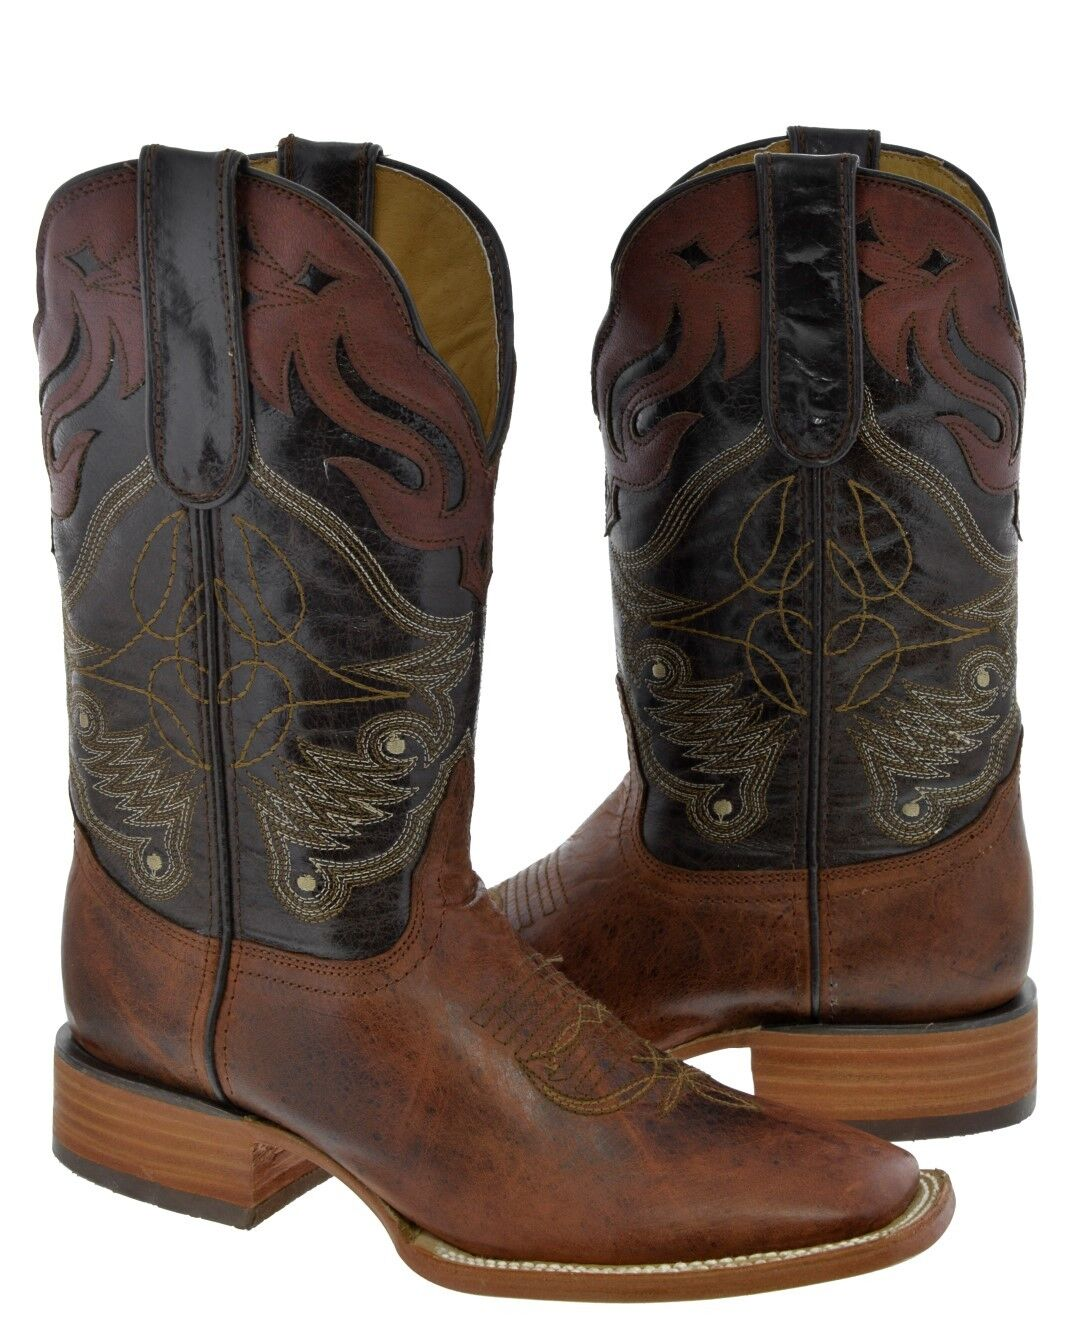 Mens Chedron Overlay Design Genuine Leather Cowboy Stiefel Western Square Square Square Toe eb763a